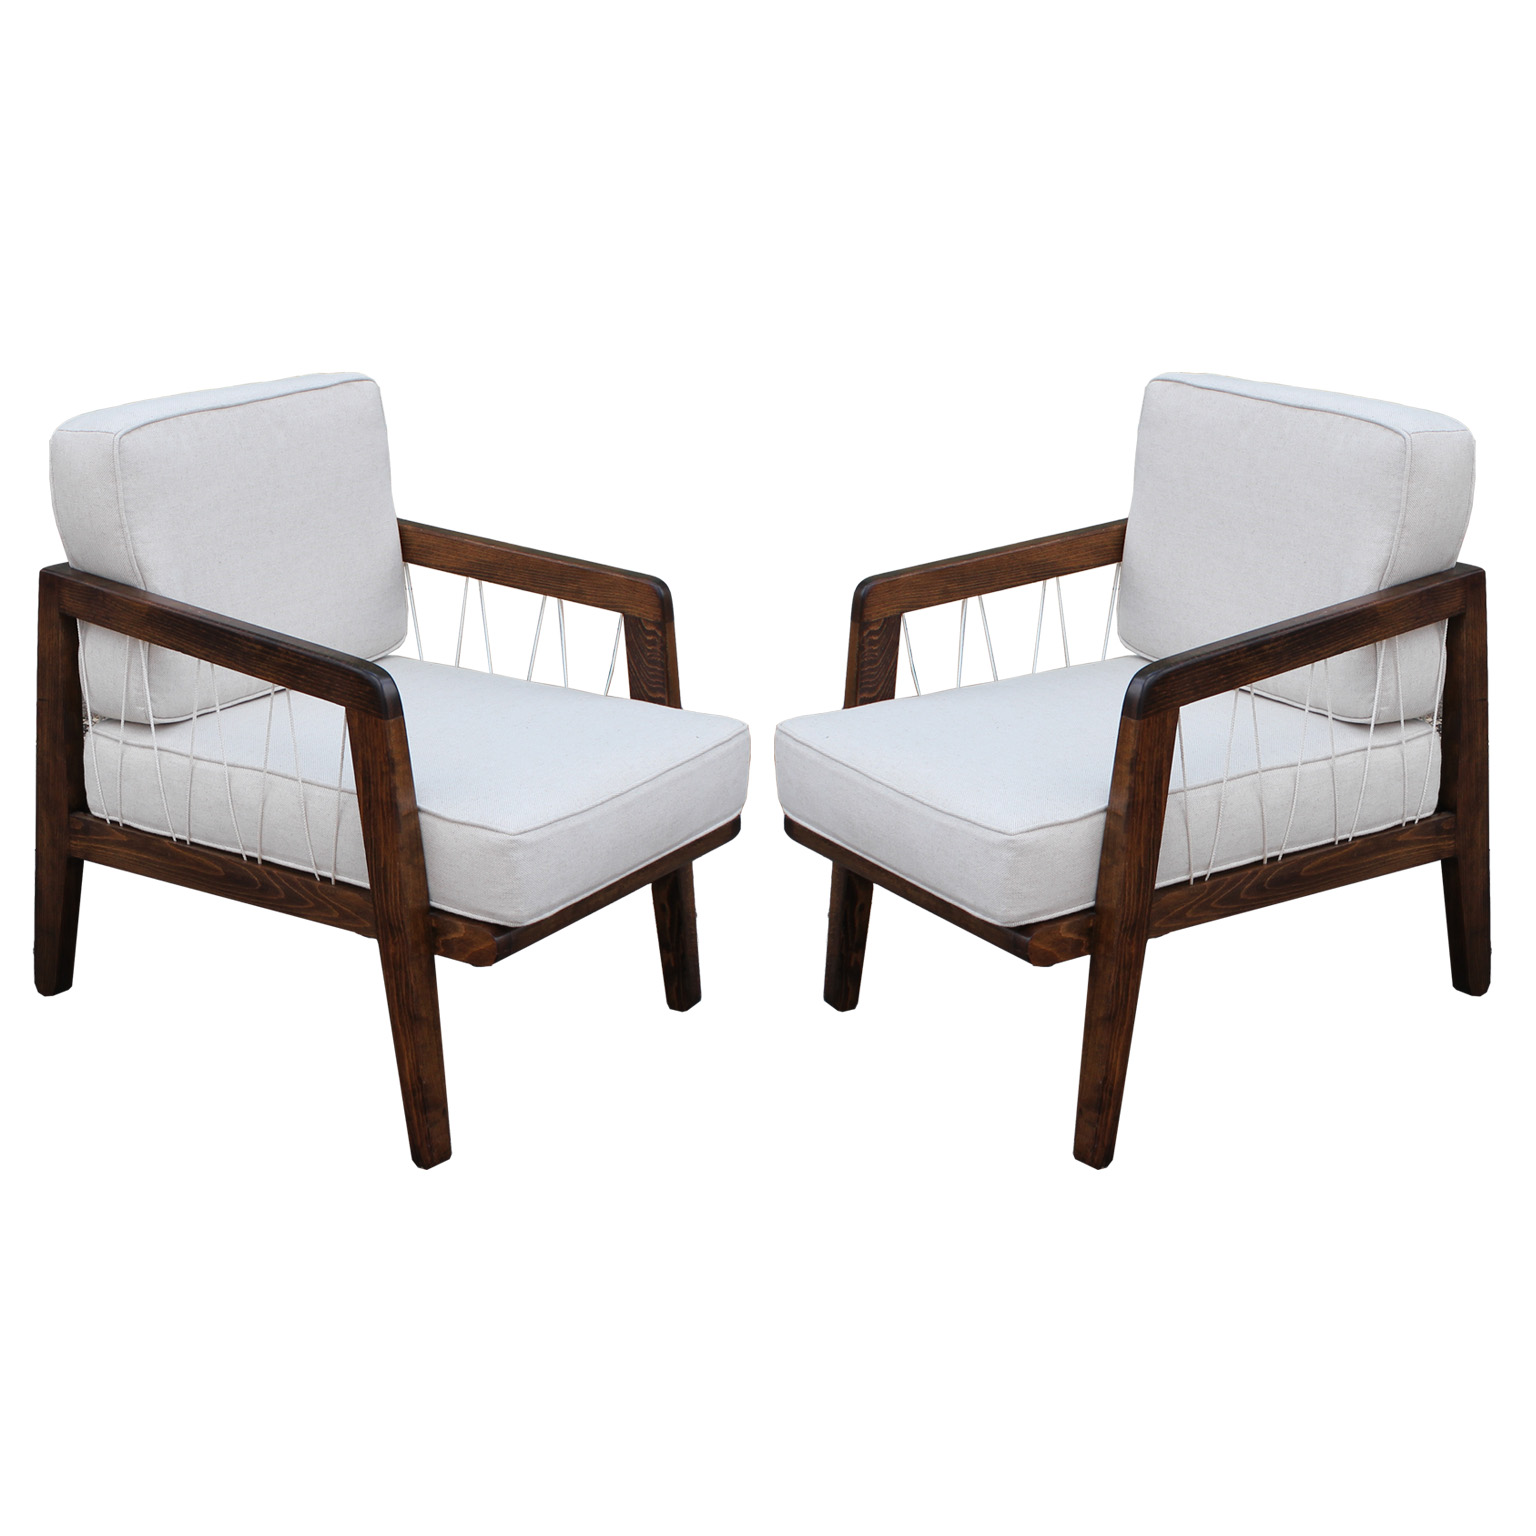 Edward wormley for drexel lounge chairs - Edward wormley chairs ...